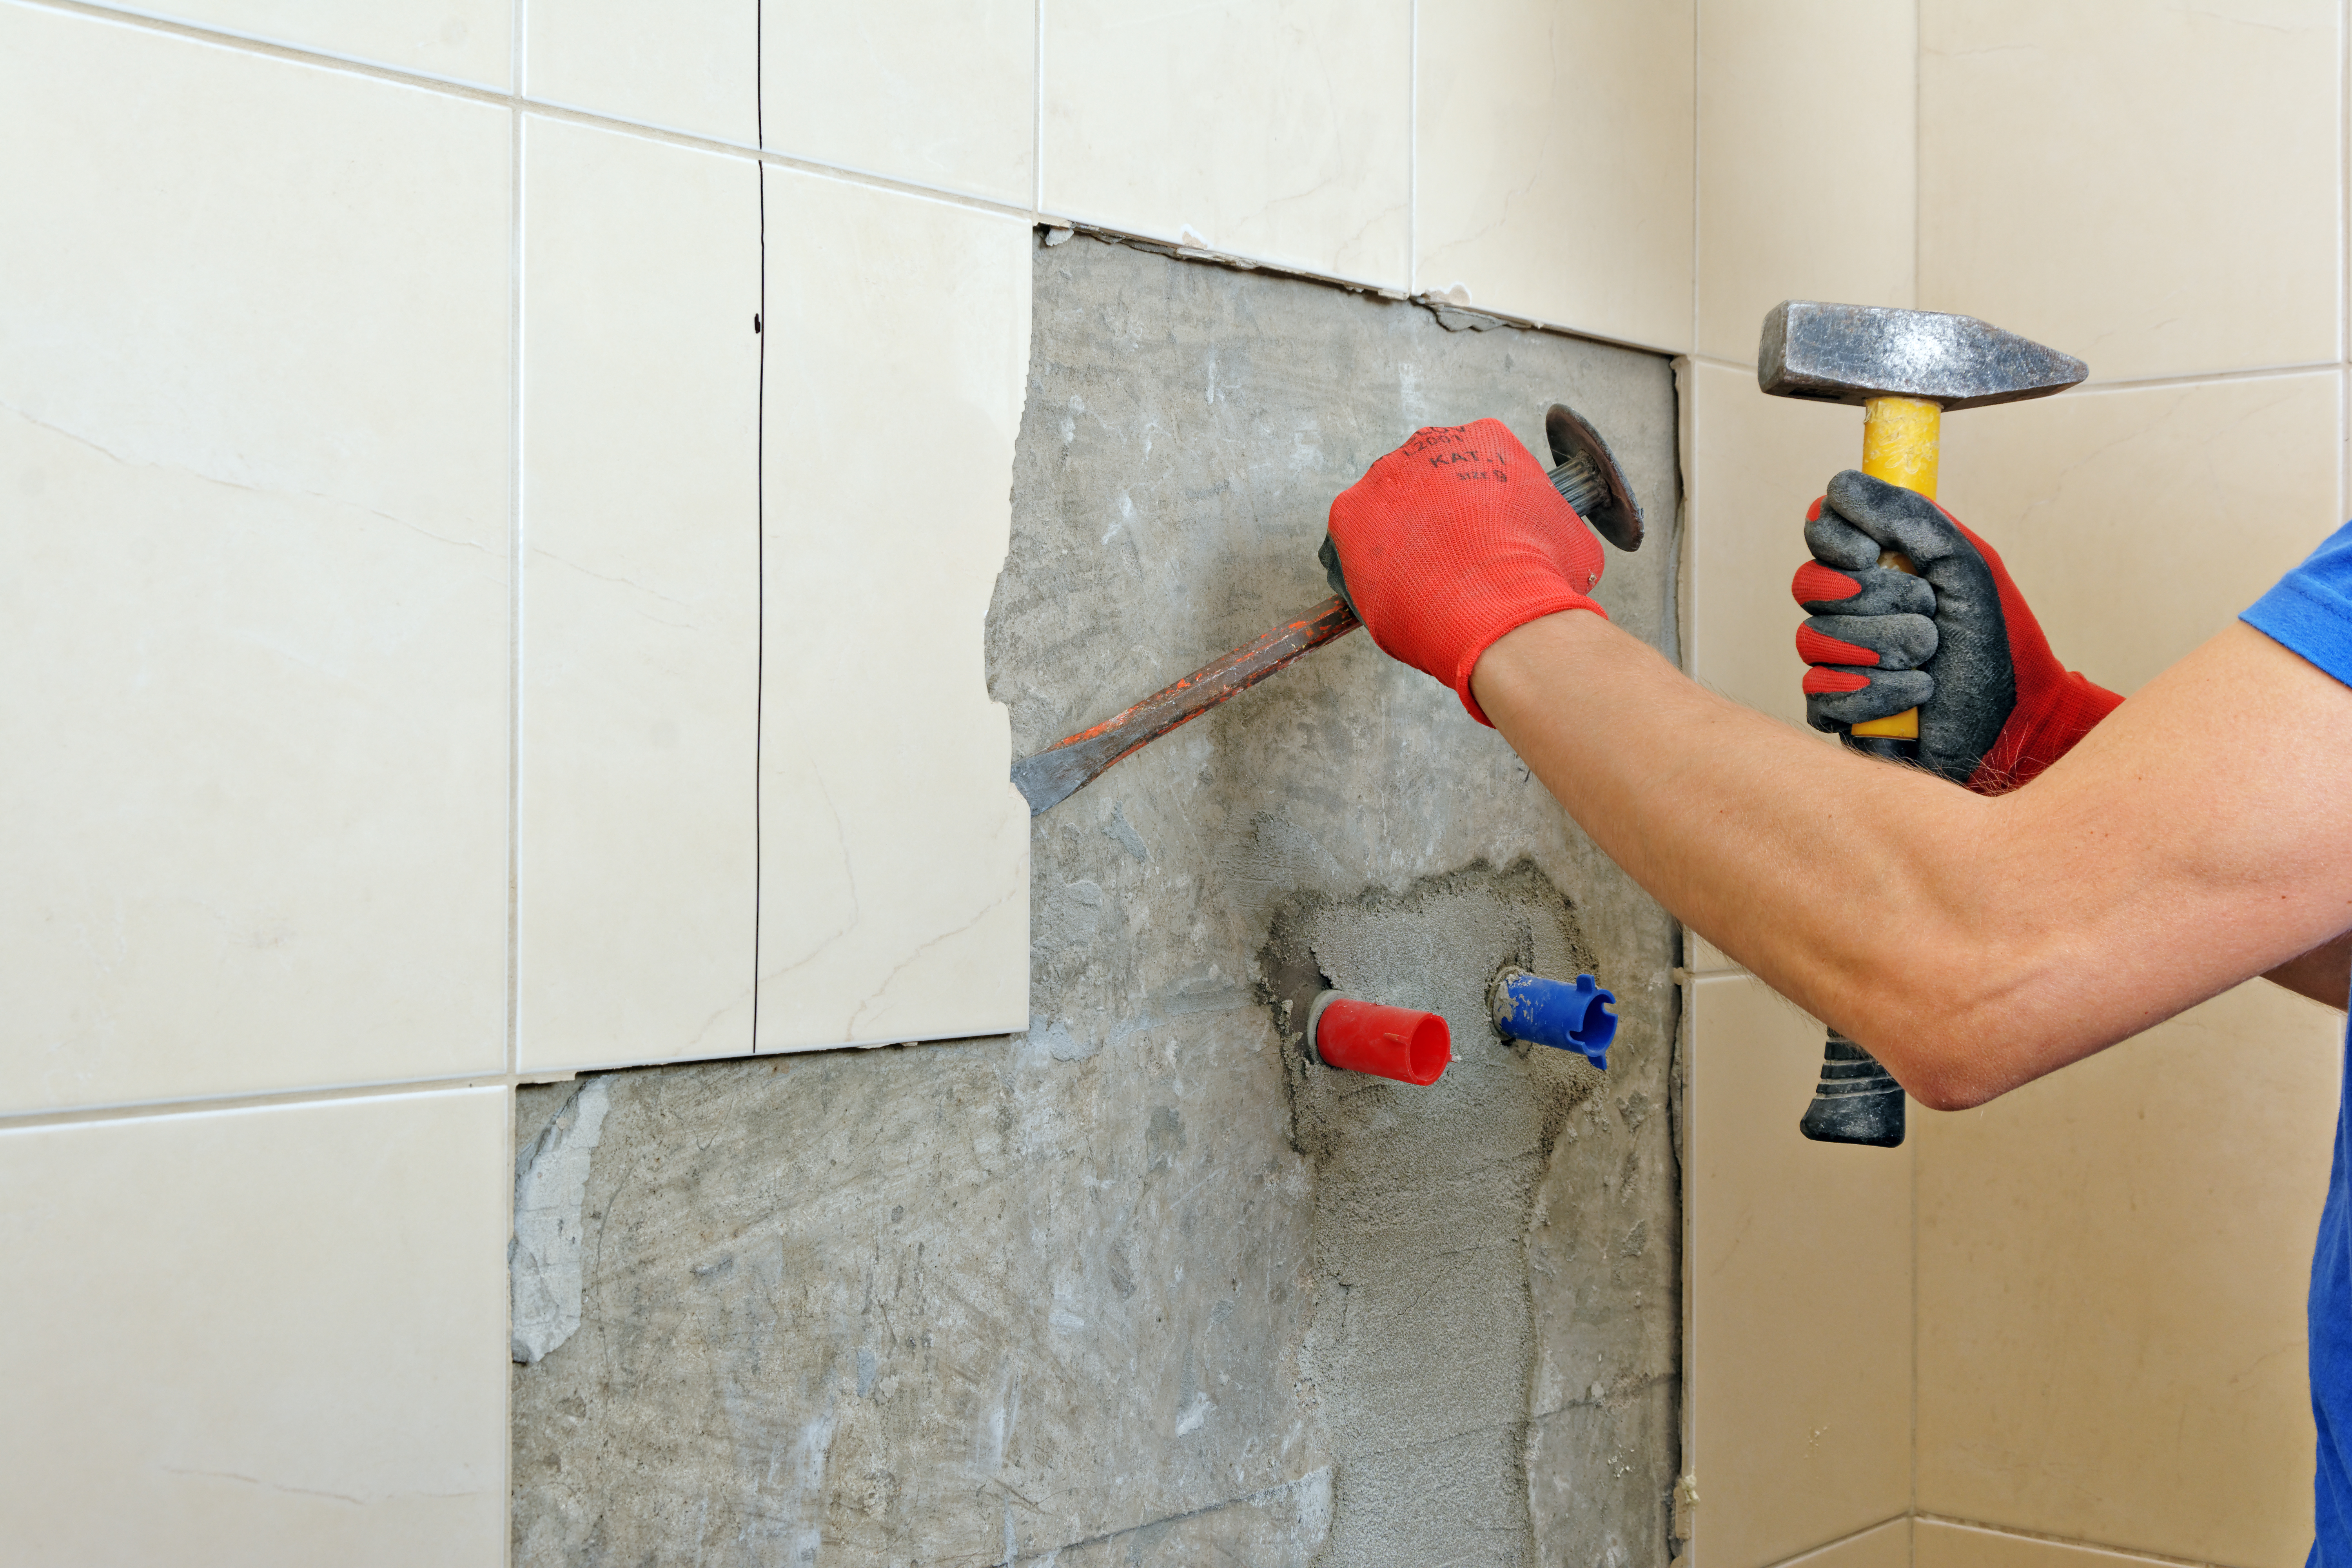 How To Remove Ceramic Wall Tile Without Damaging Drywall